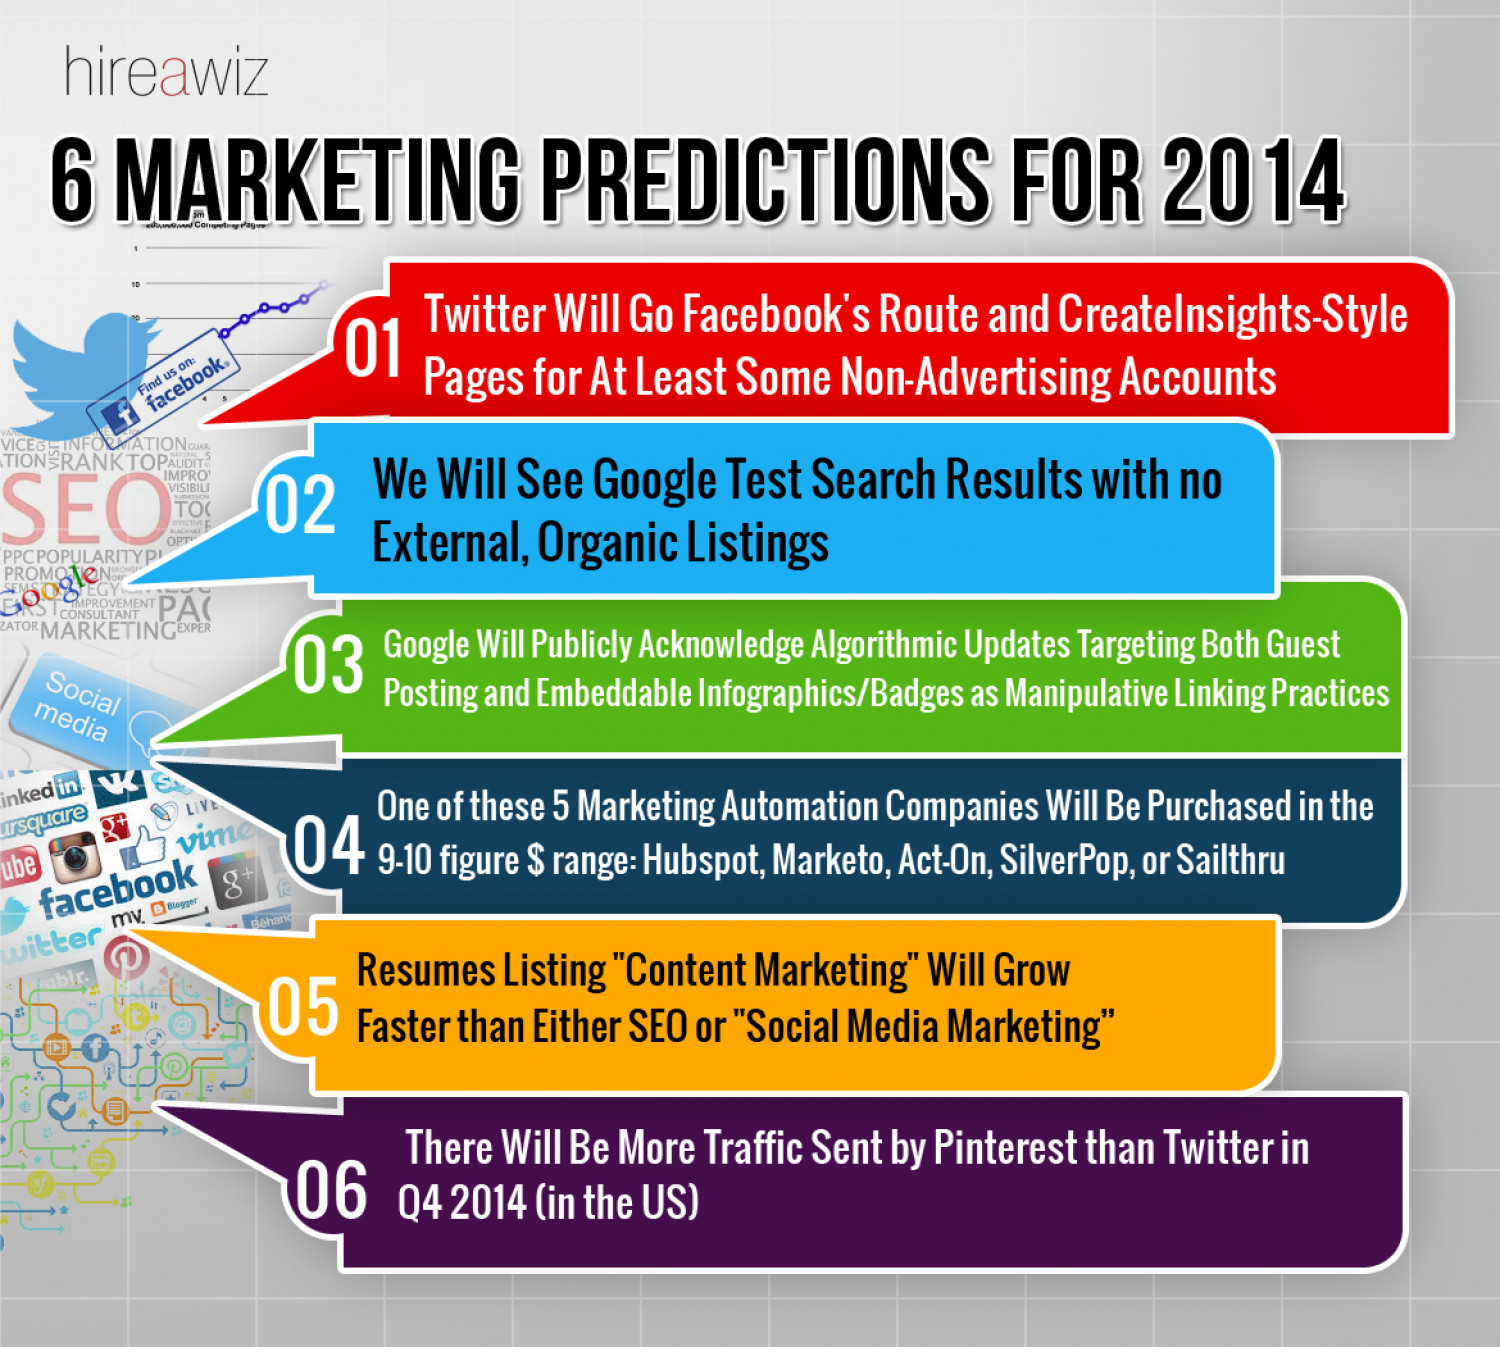 6 Marketing Predictions for 2014 Infographic